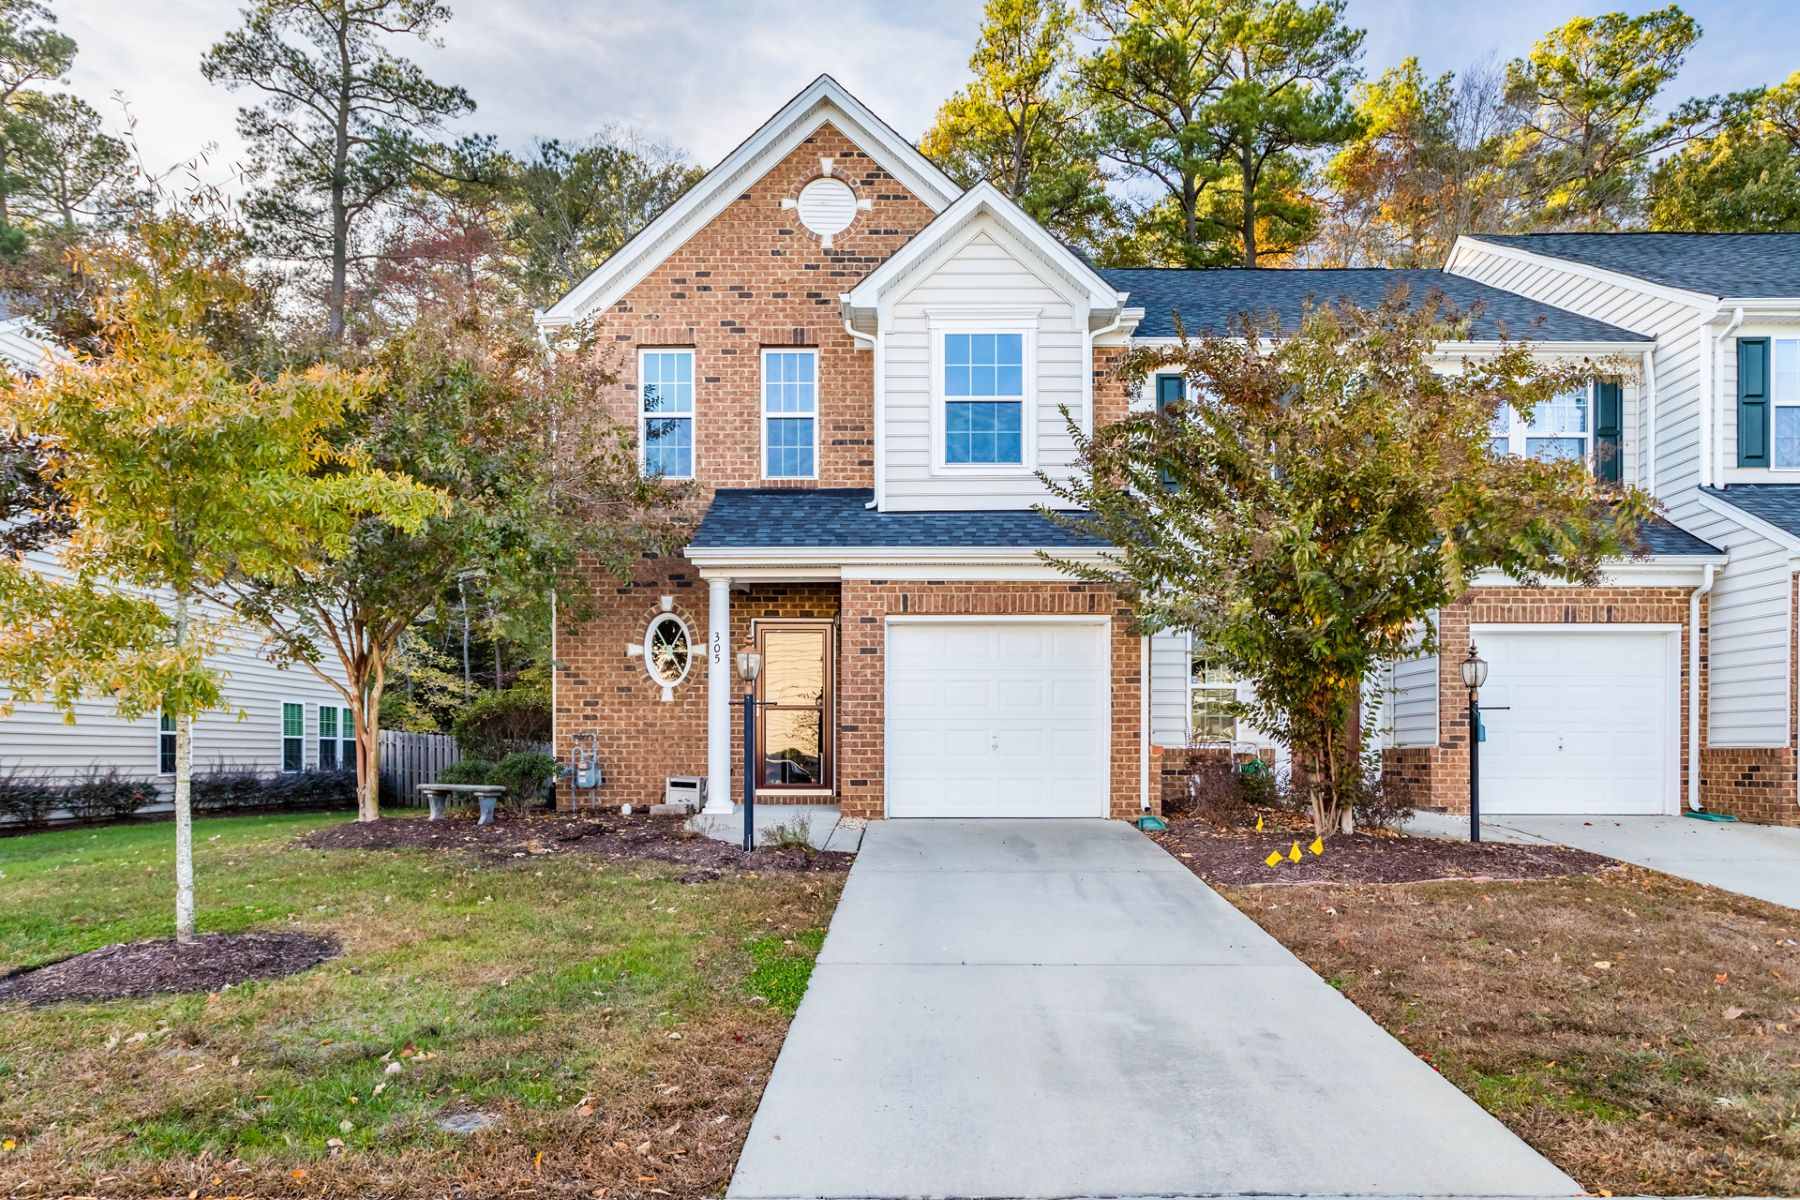 townhouses for Active at Riverwalk Townes 305 Alexia Ln Yorktown, Virginia 23690 United States